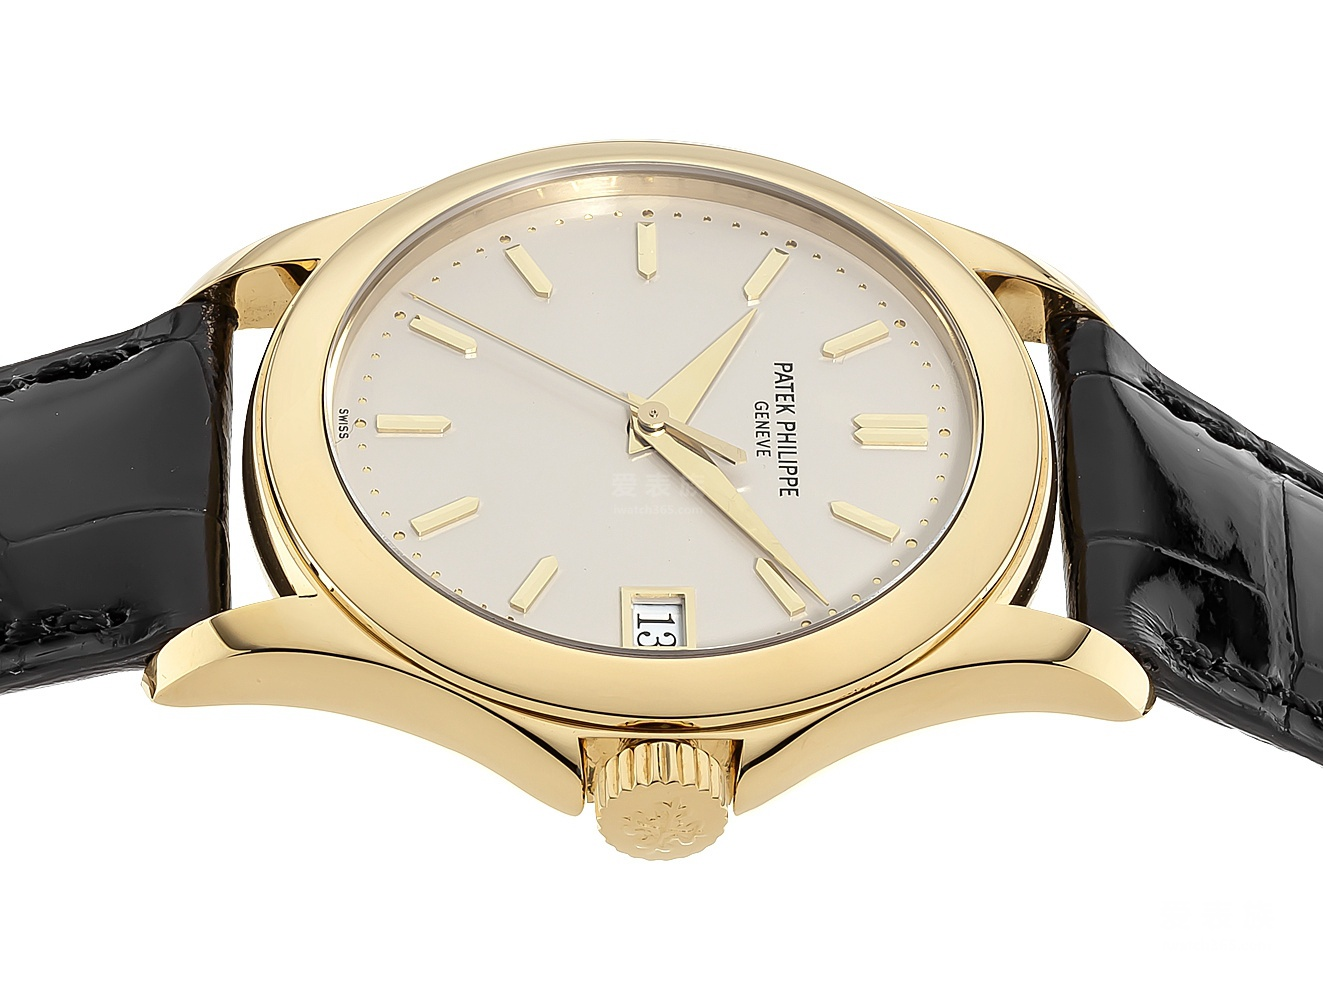 Patek Philippe Calatrava Fake Watches